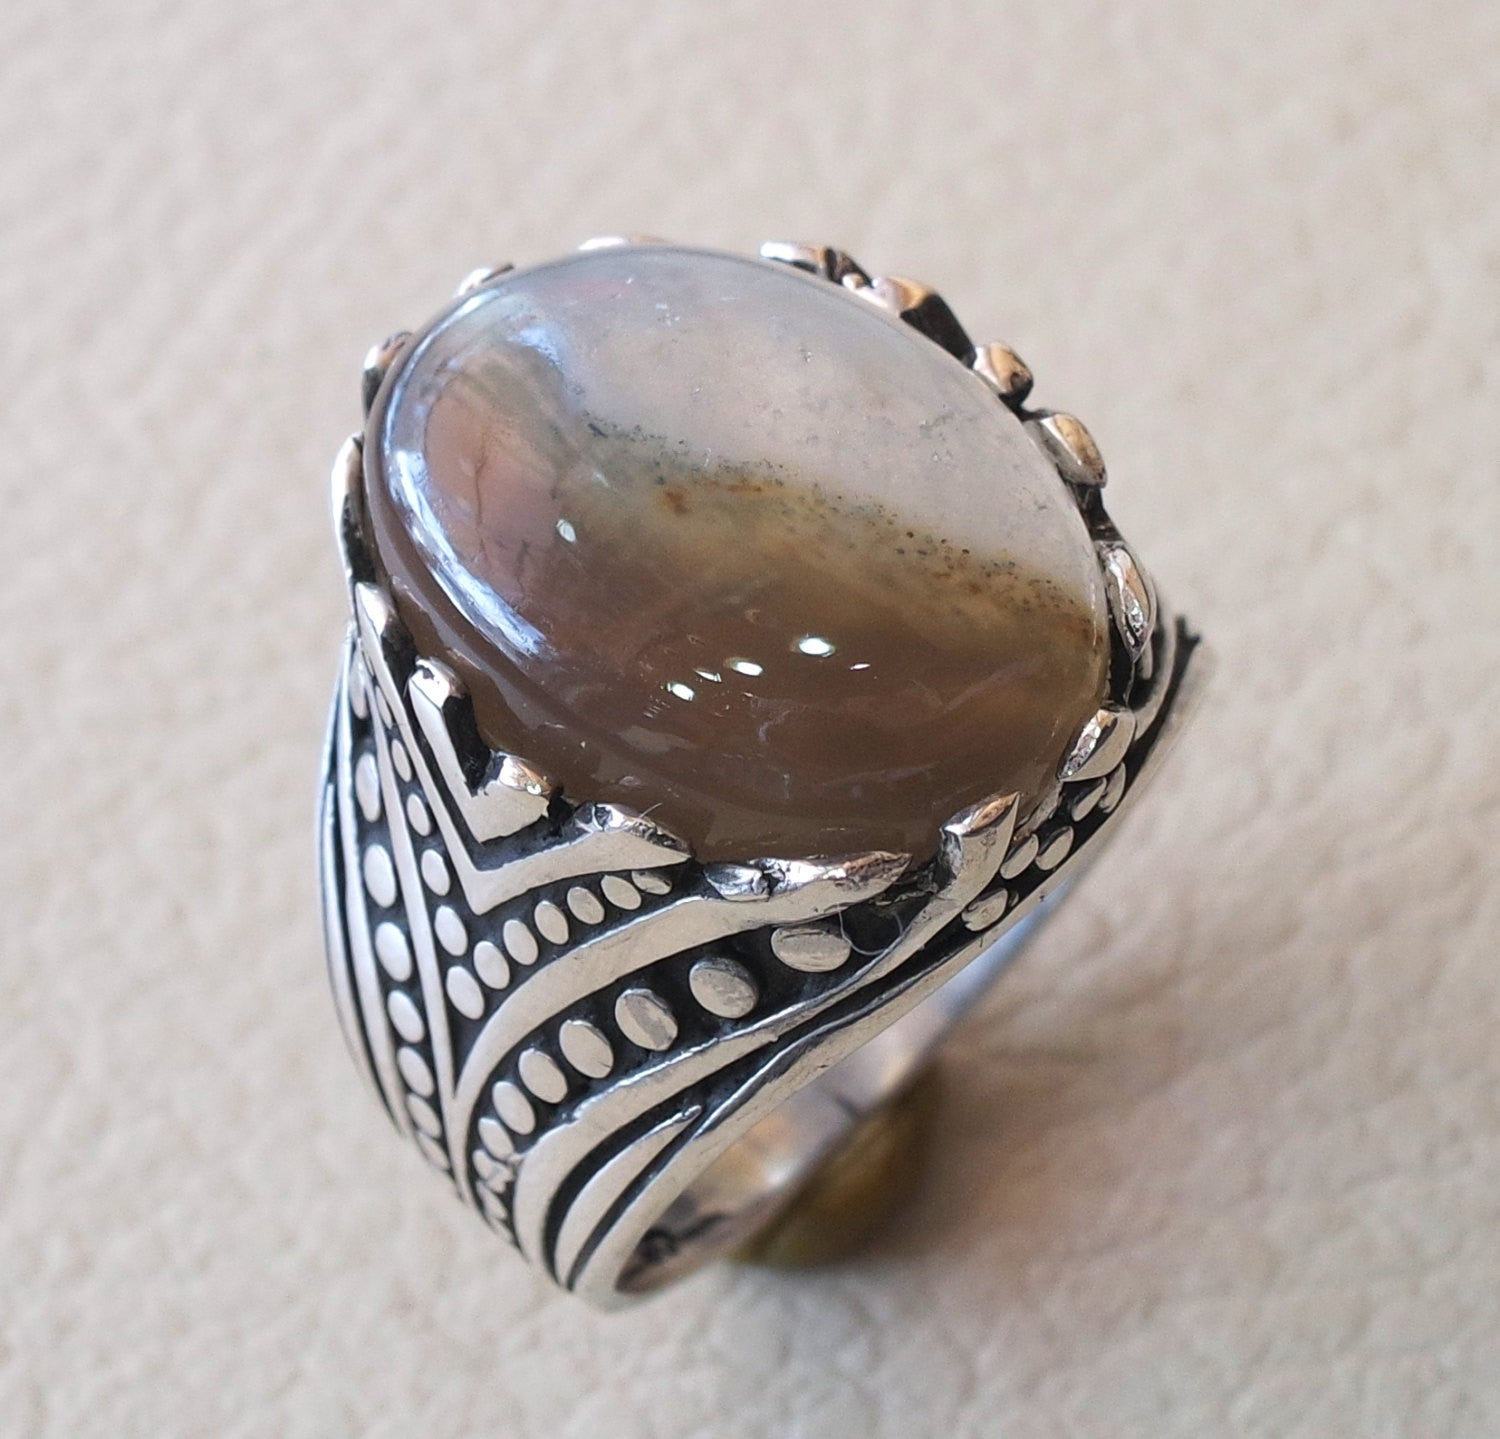 Botswana agate natural semi precious two color highest quality aqeeq stone men ring sterling silver 925 all sizes jewelry fast shipping